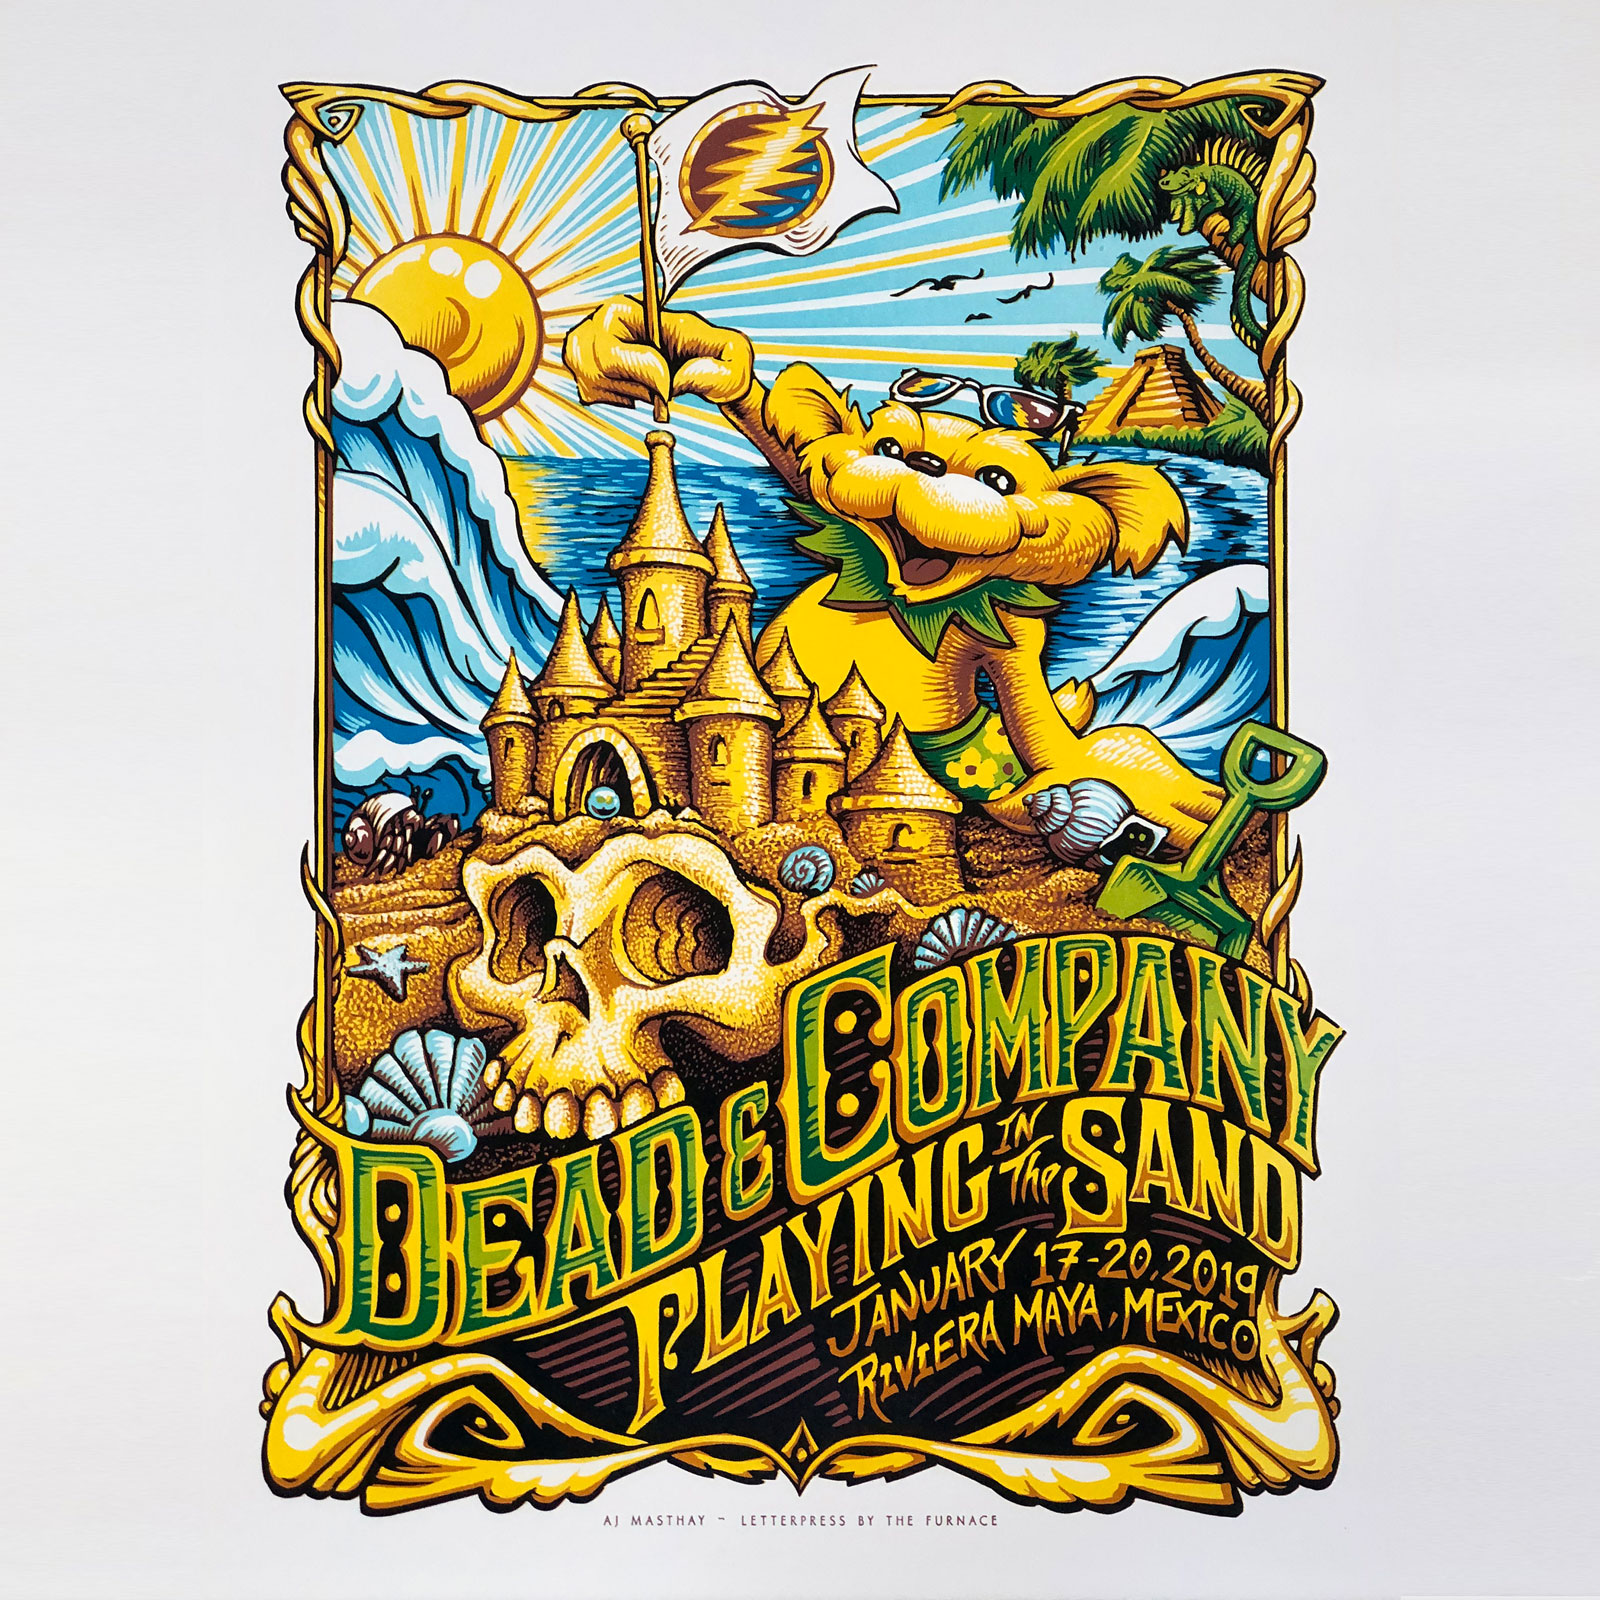 The Curtain With: Dead & Company - 2019-01-20 Playing In The